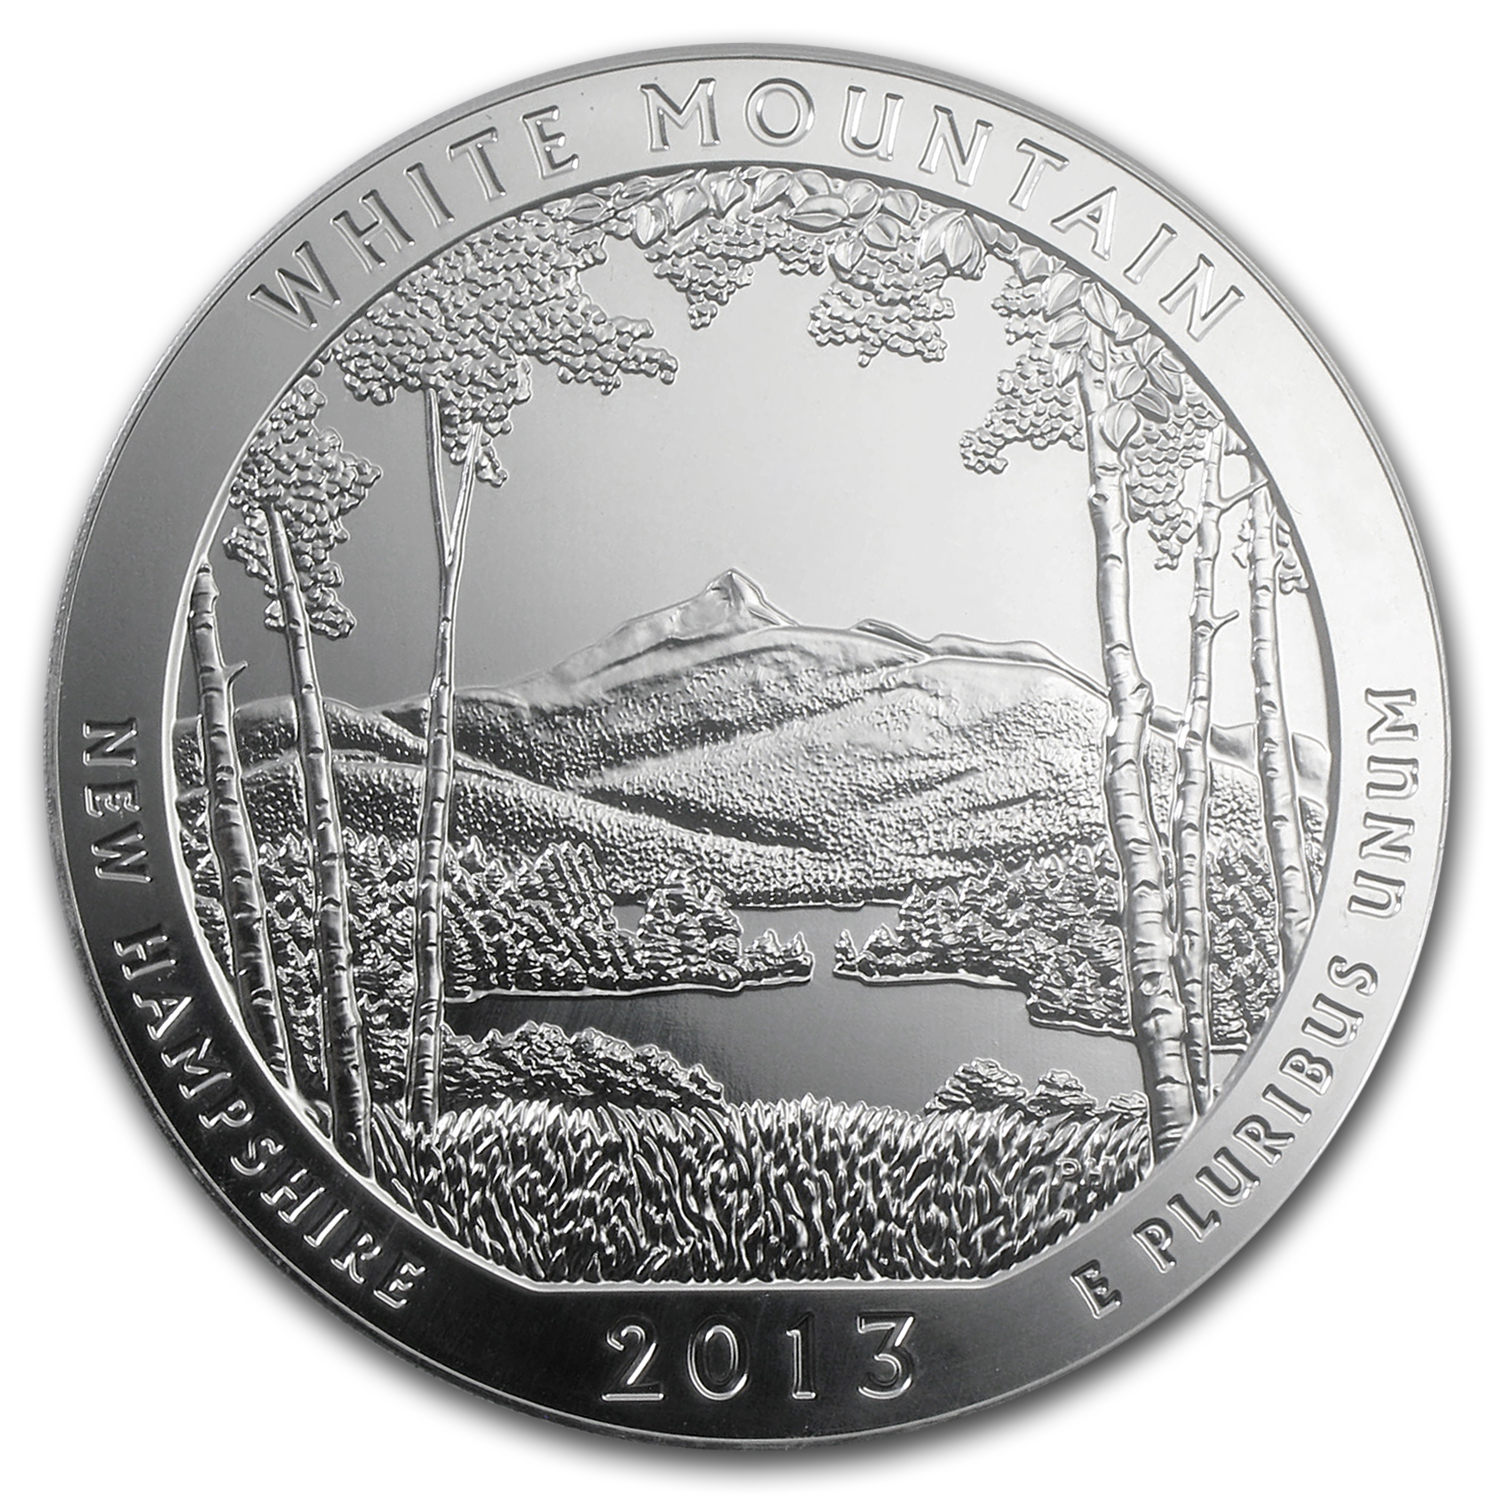 2013 5 oz Silver ATB White Mountain (10-Coin MintDirect® Tube)